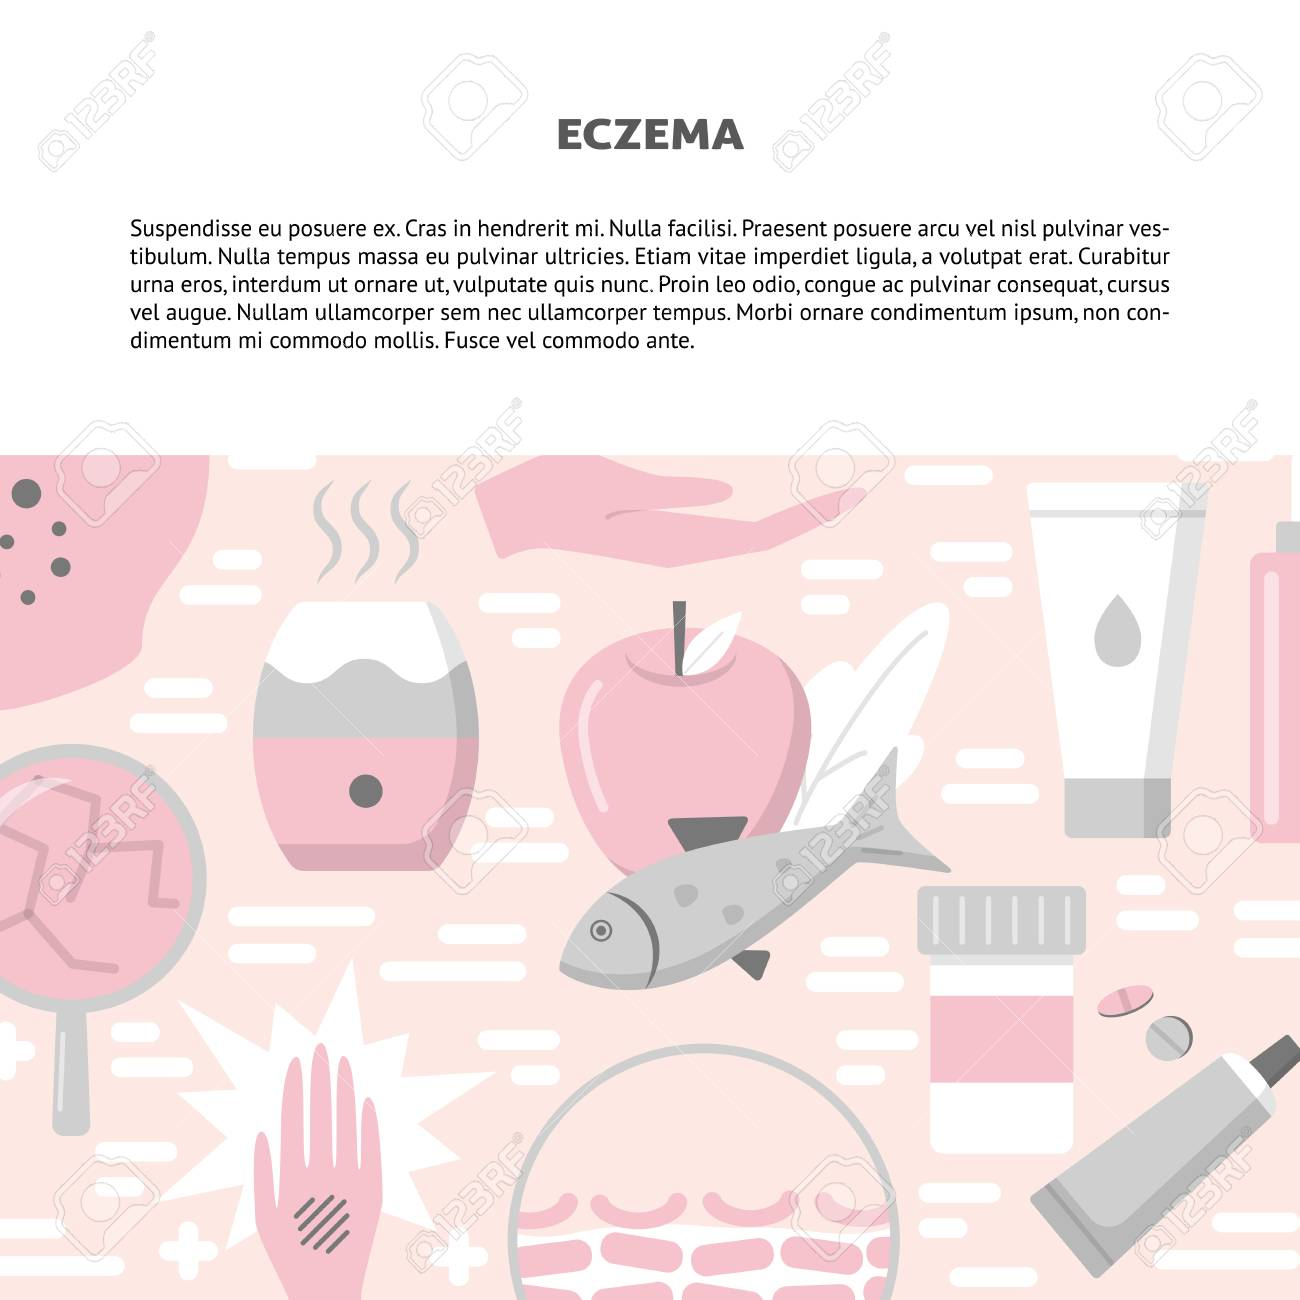 Eczema Symptoms And Treatment Concept Background In Flat Style 1300x1300